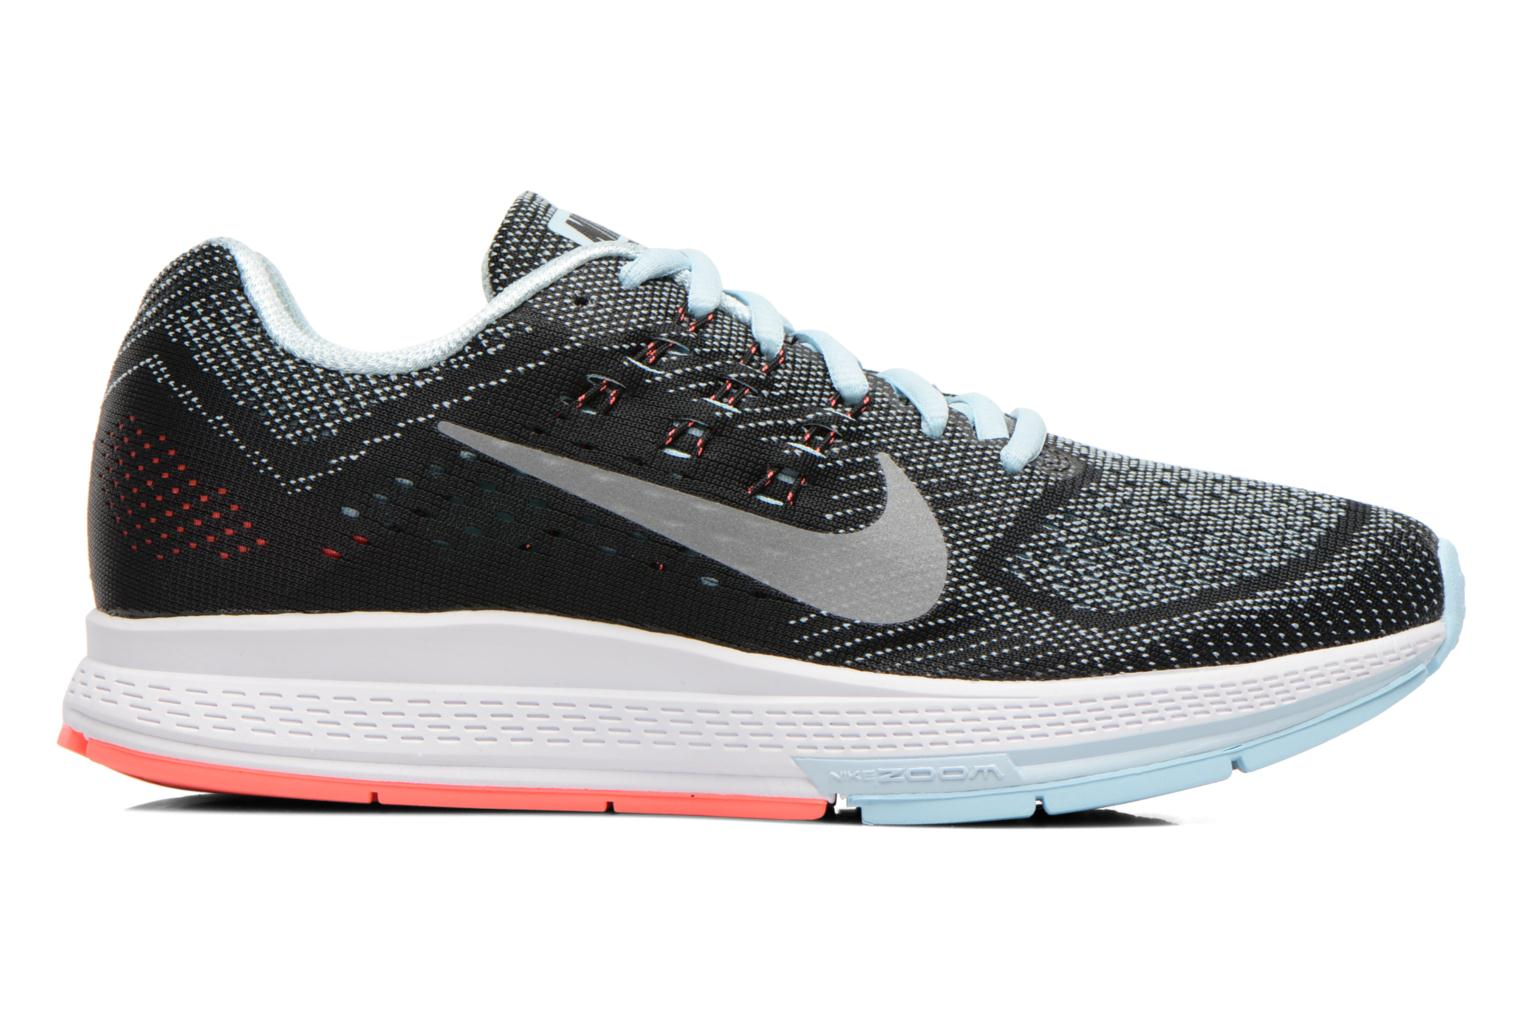 W Nike Air Zoom Structure 18 Ice/Metallic Silver-Ht Lv-Blk